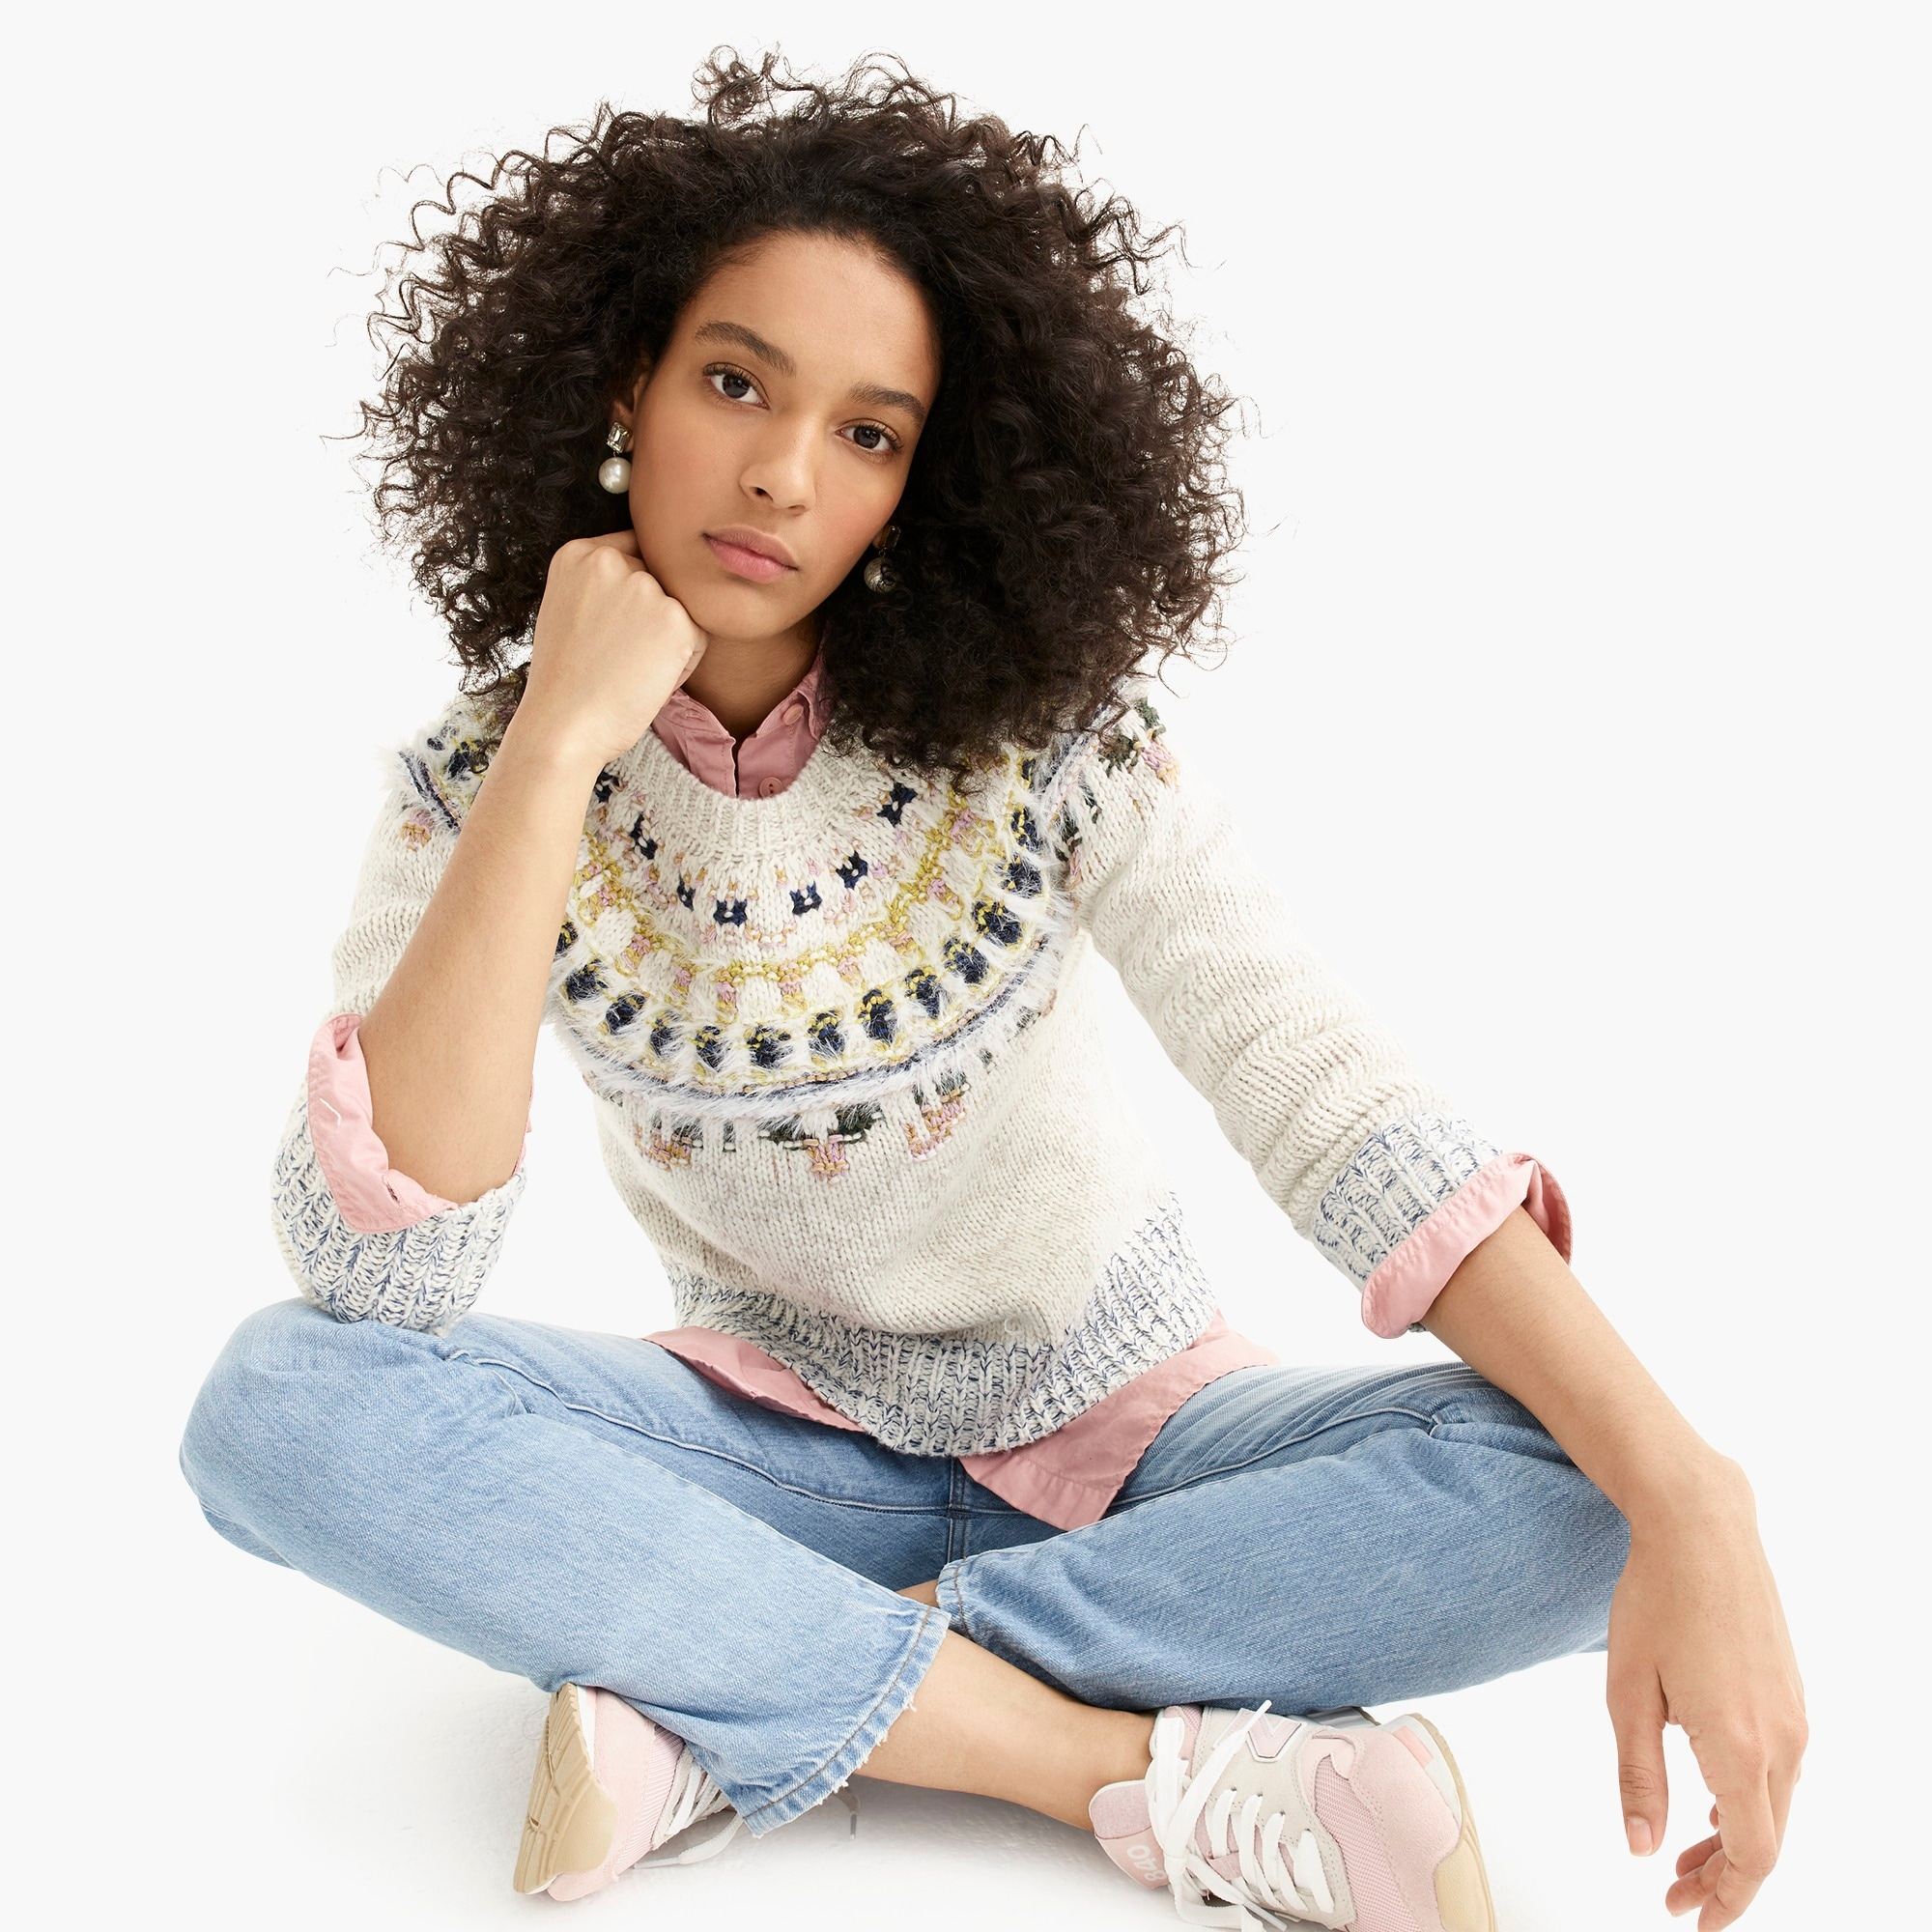 womens The Reeds X J.Crew crewneck sweater in fuzzy Fair Isle